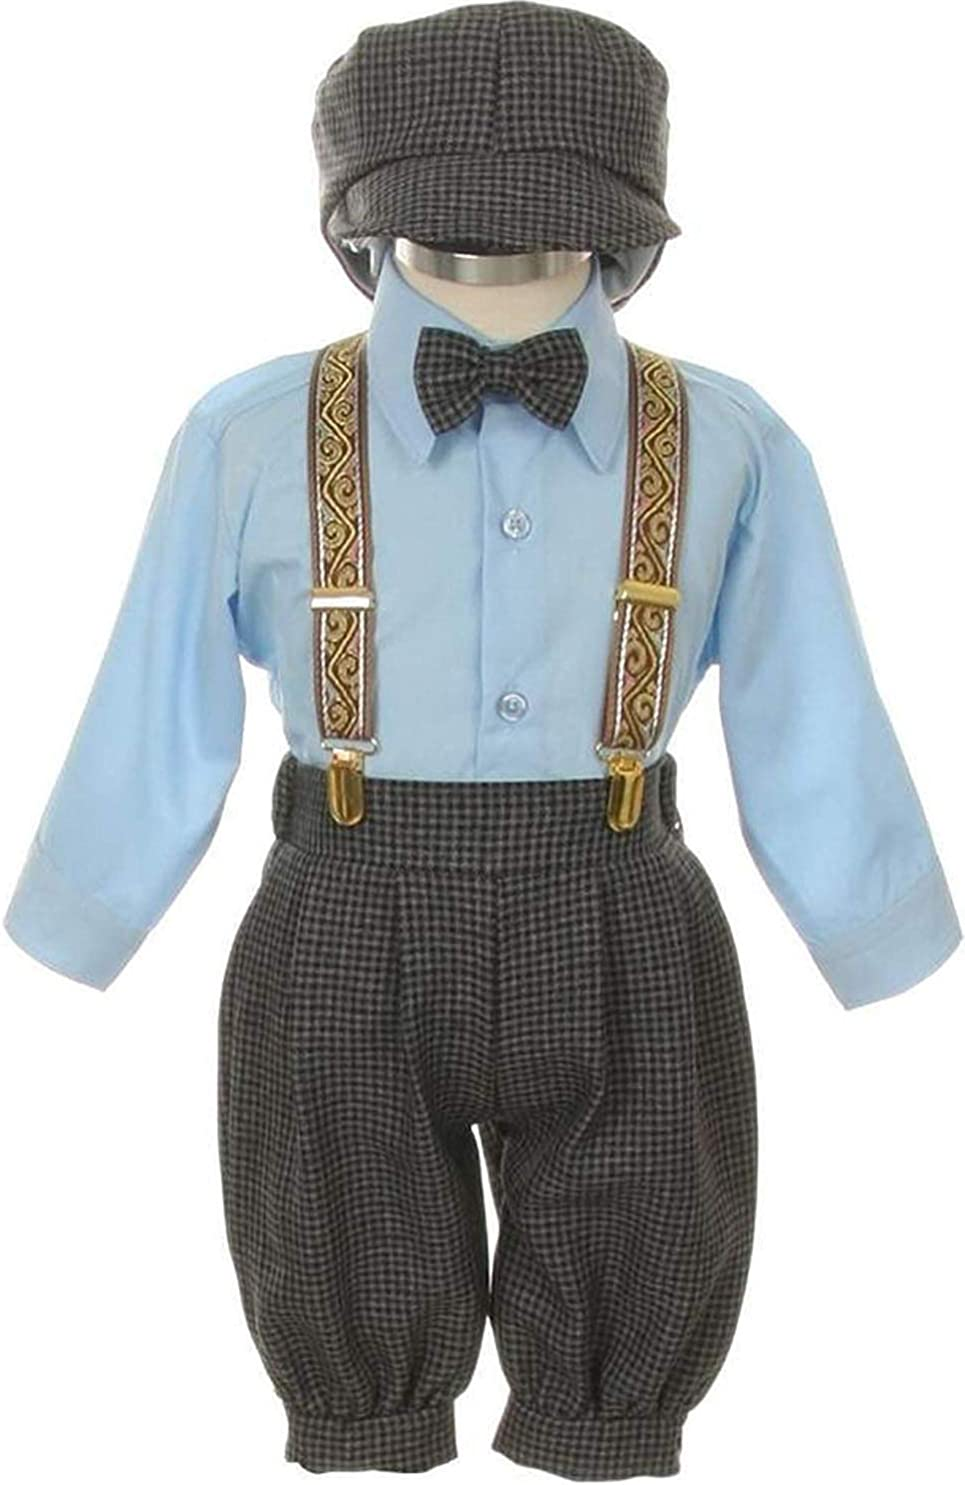 SK Vintage Dress Suit-Tuxedo Knickers Outfit Baby Boys & Toddler-Blue Houndstooth